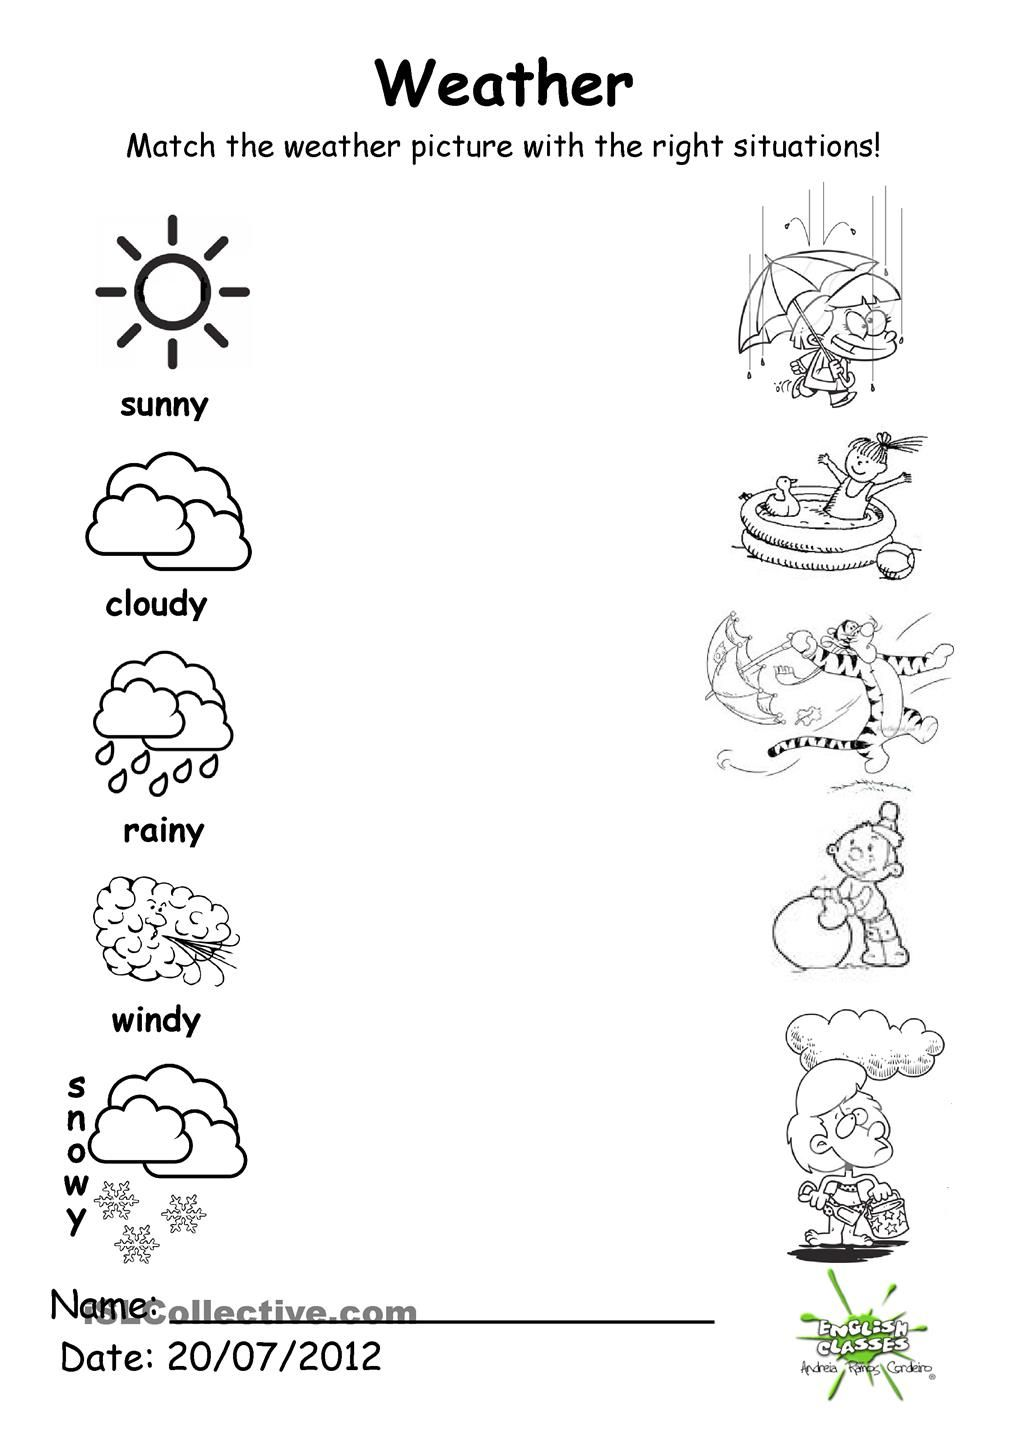 Weather match | Weather worksheets, Weather for kids ...